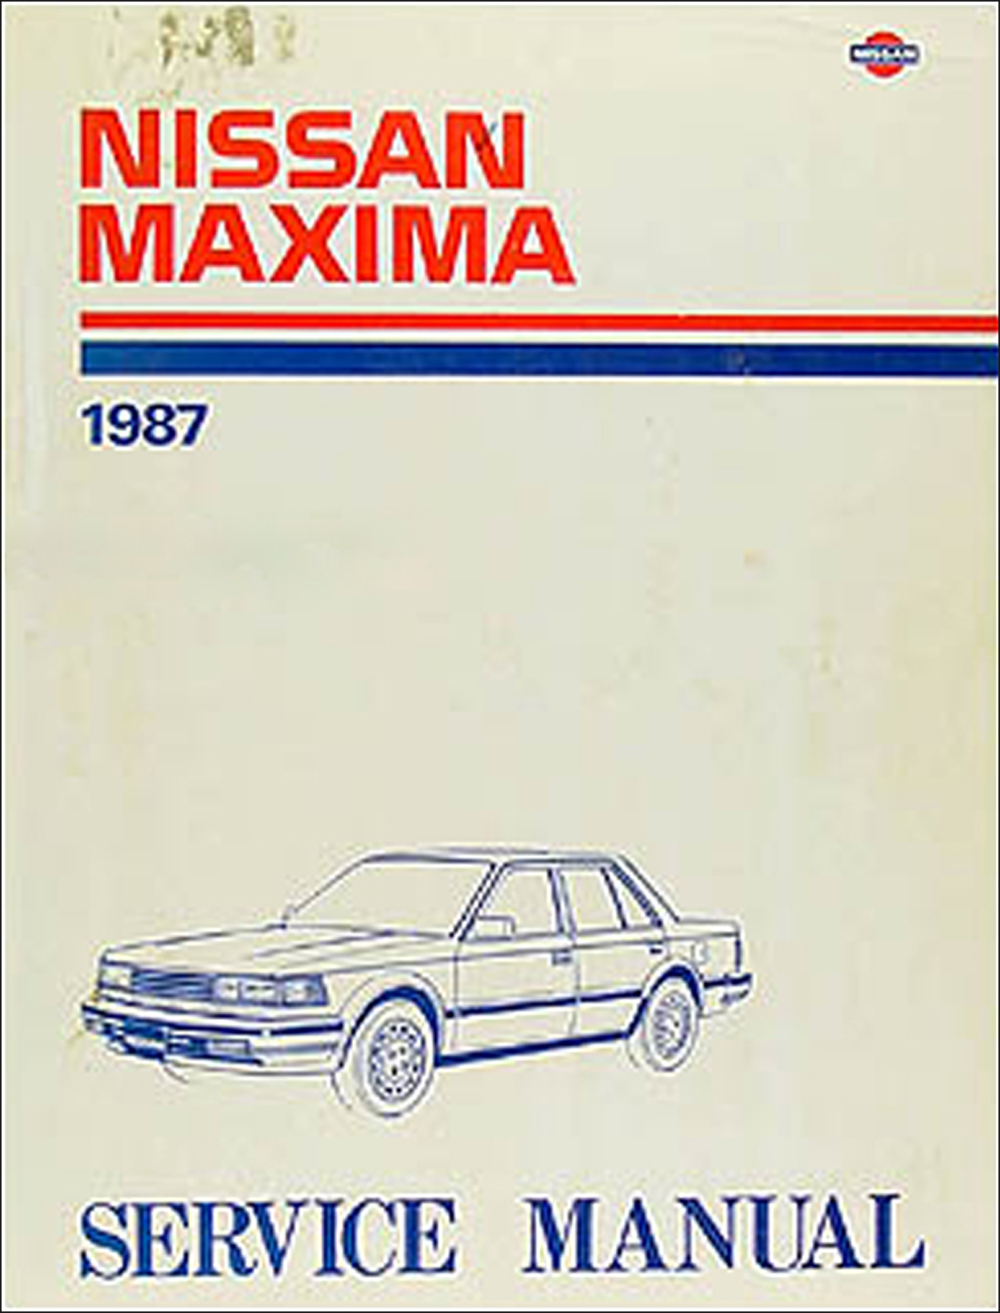 1987 Nissan Maxima Repair Manual Original